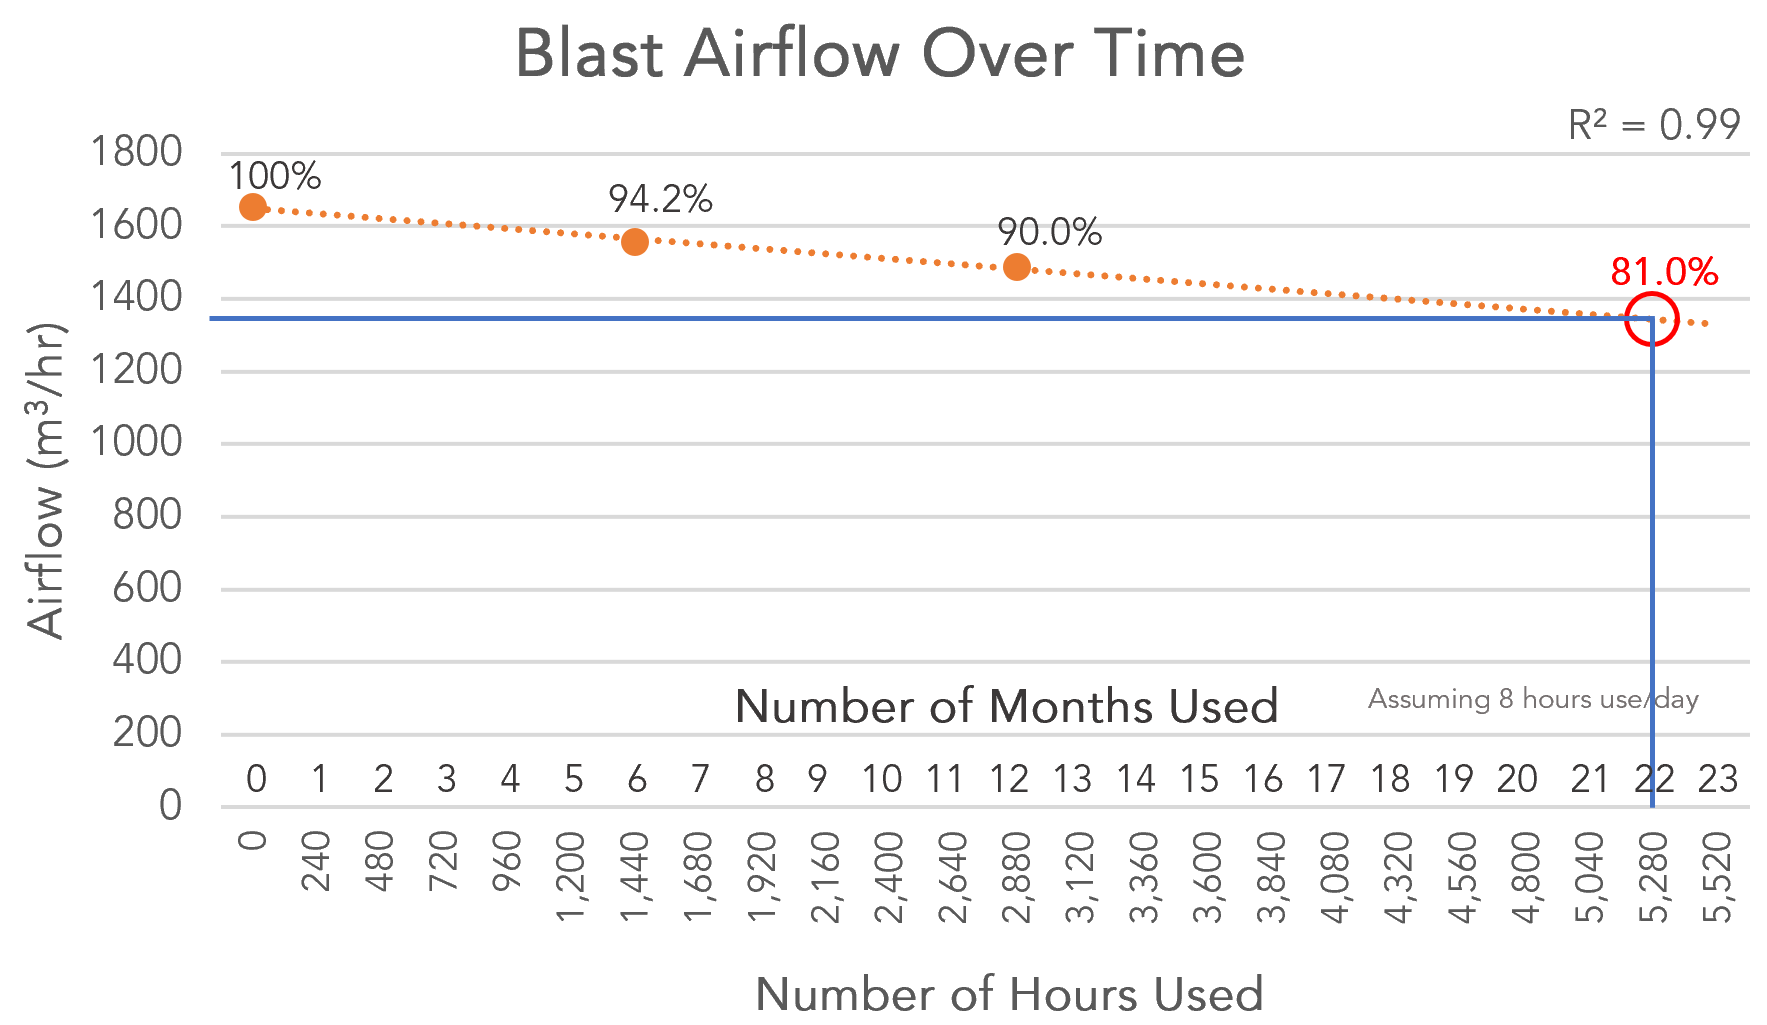 blast airflow over time